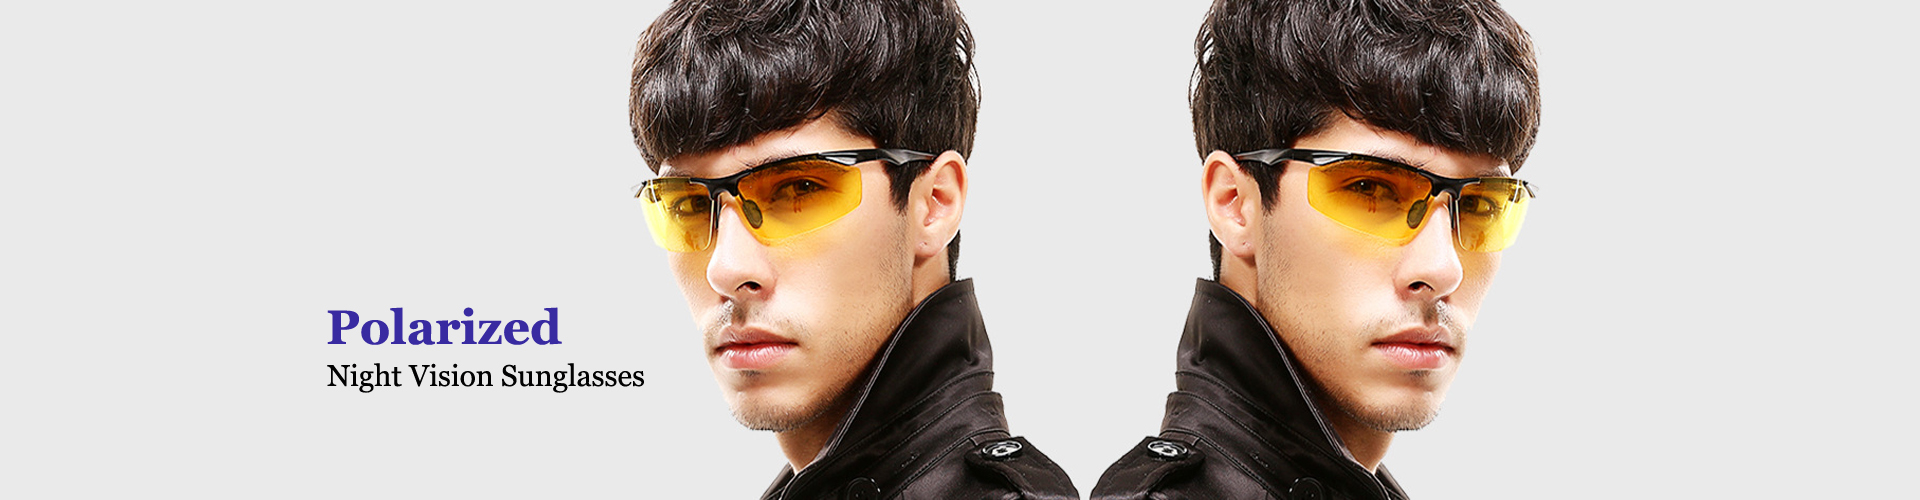 ee4e084165 Motelan Sunglasses store - Small Orders Online Store